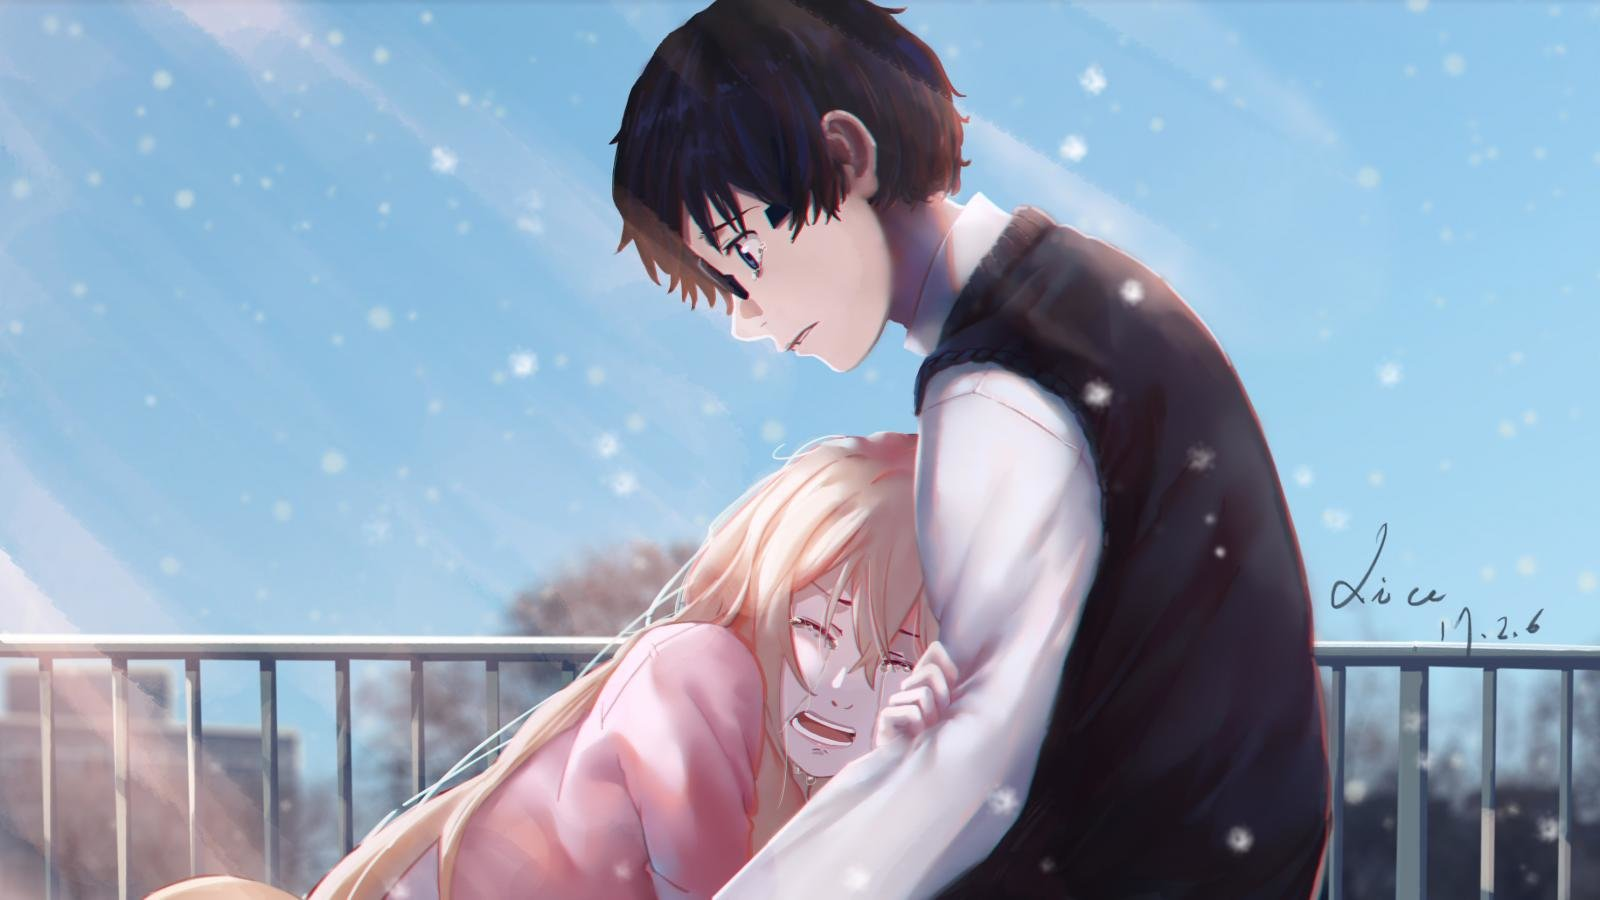 Your Lie In April Wallpapers 1600x900 Desktop Backgrounds